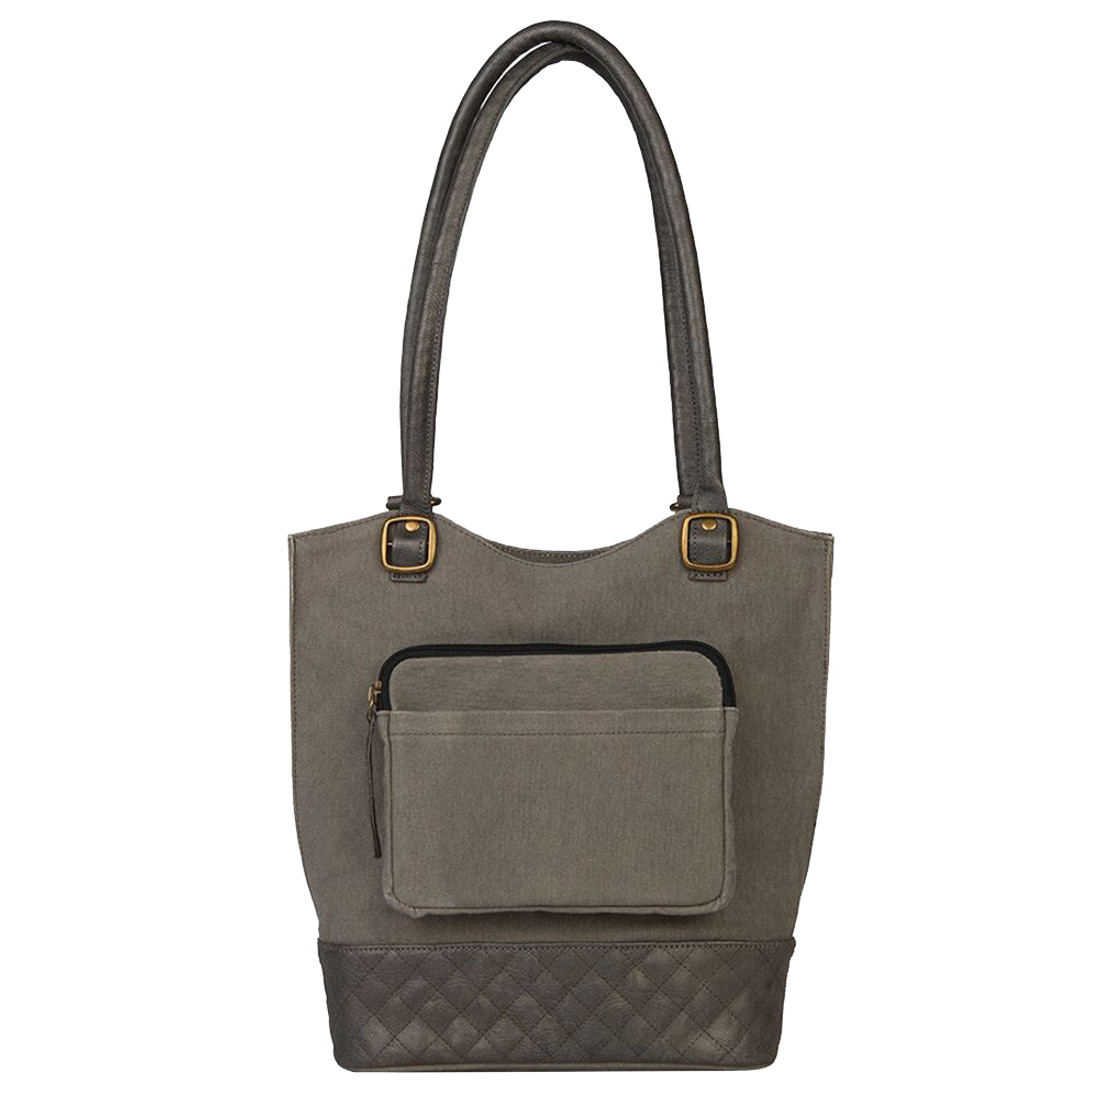 Mona B Two In One Convertible Tote Bag Purse